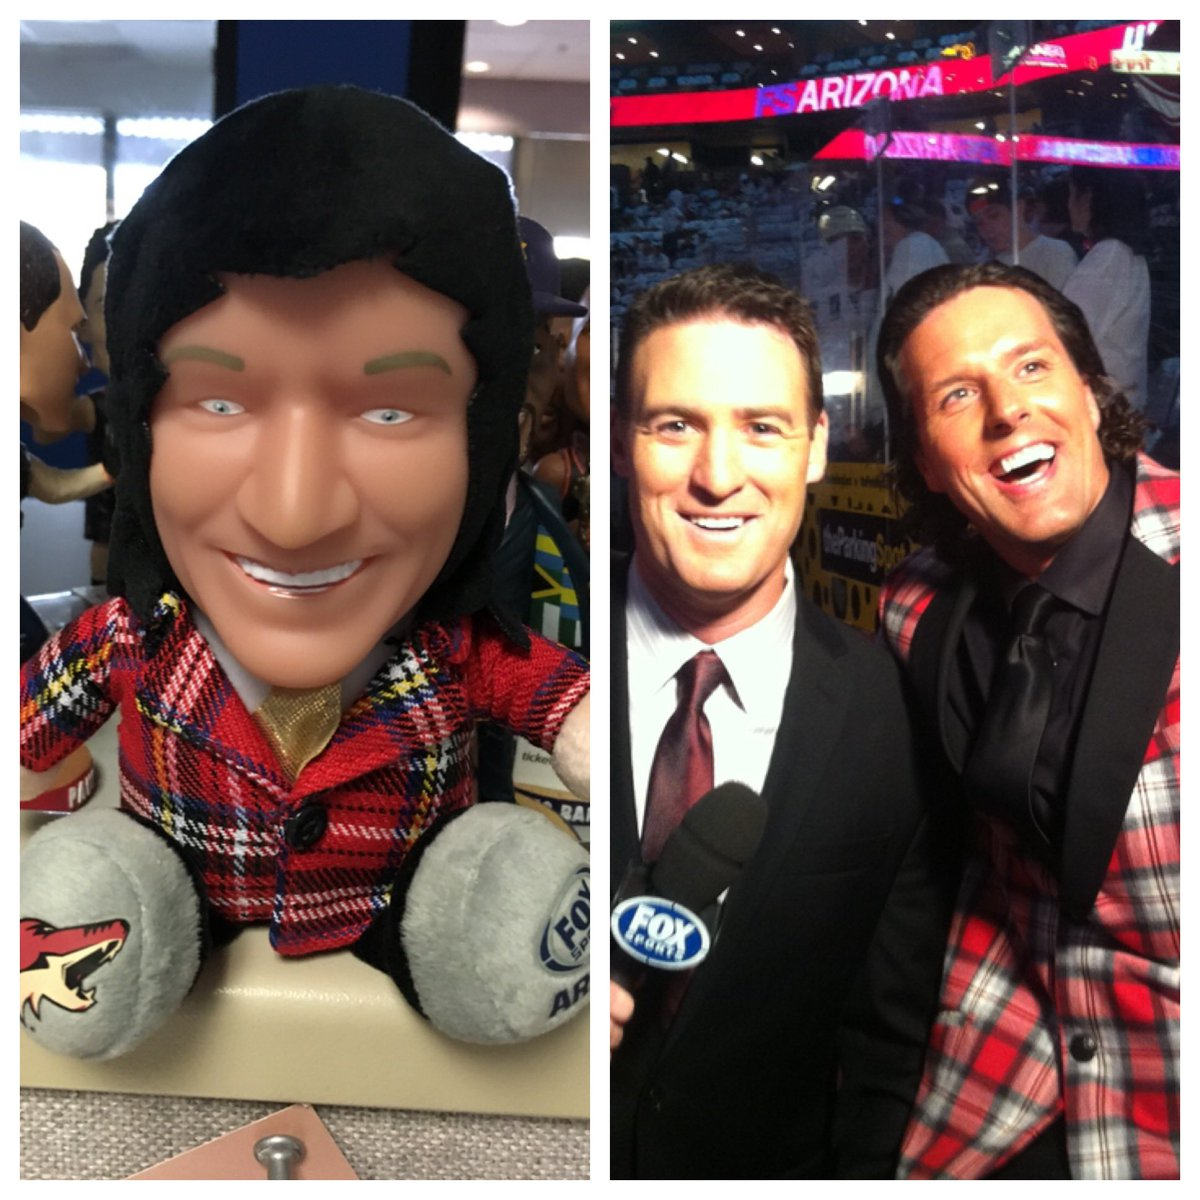 Where have I seen that jacket before? #Coyotes fans receive a @TysonNash doll at tonight's game vs #Penguins. https://t.co/PPRYlWOQG2